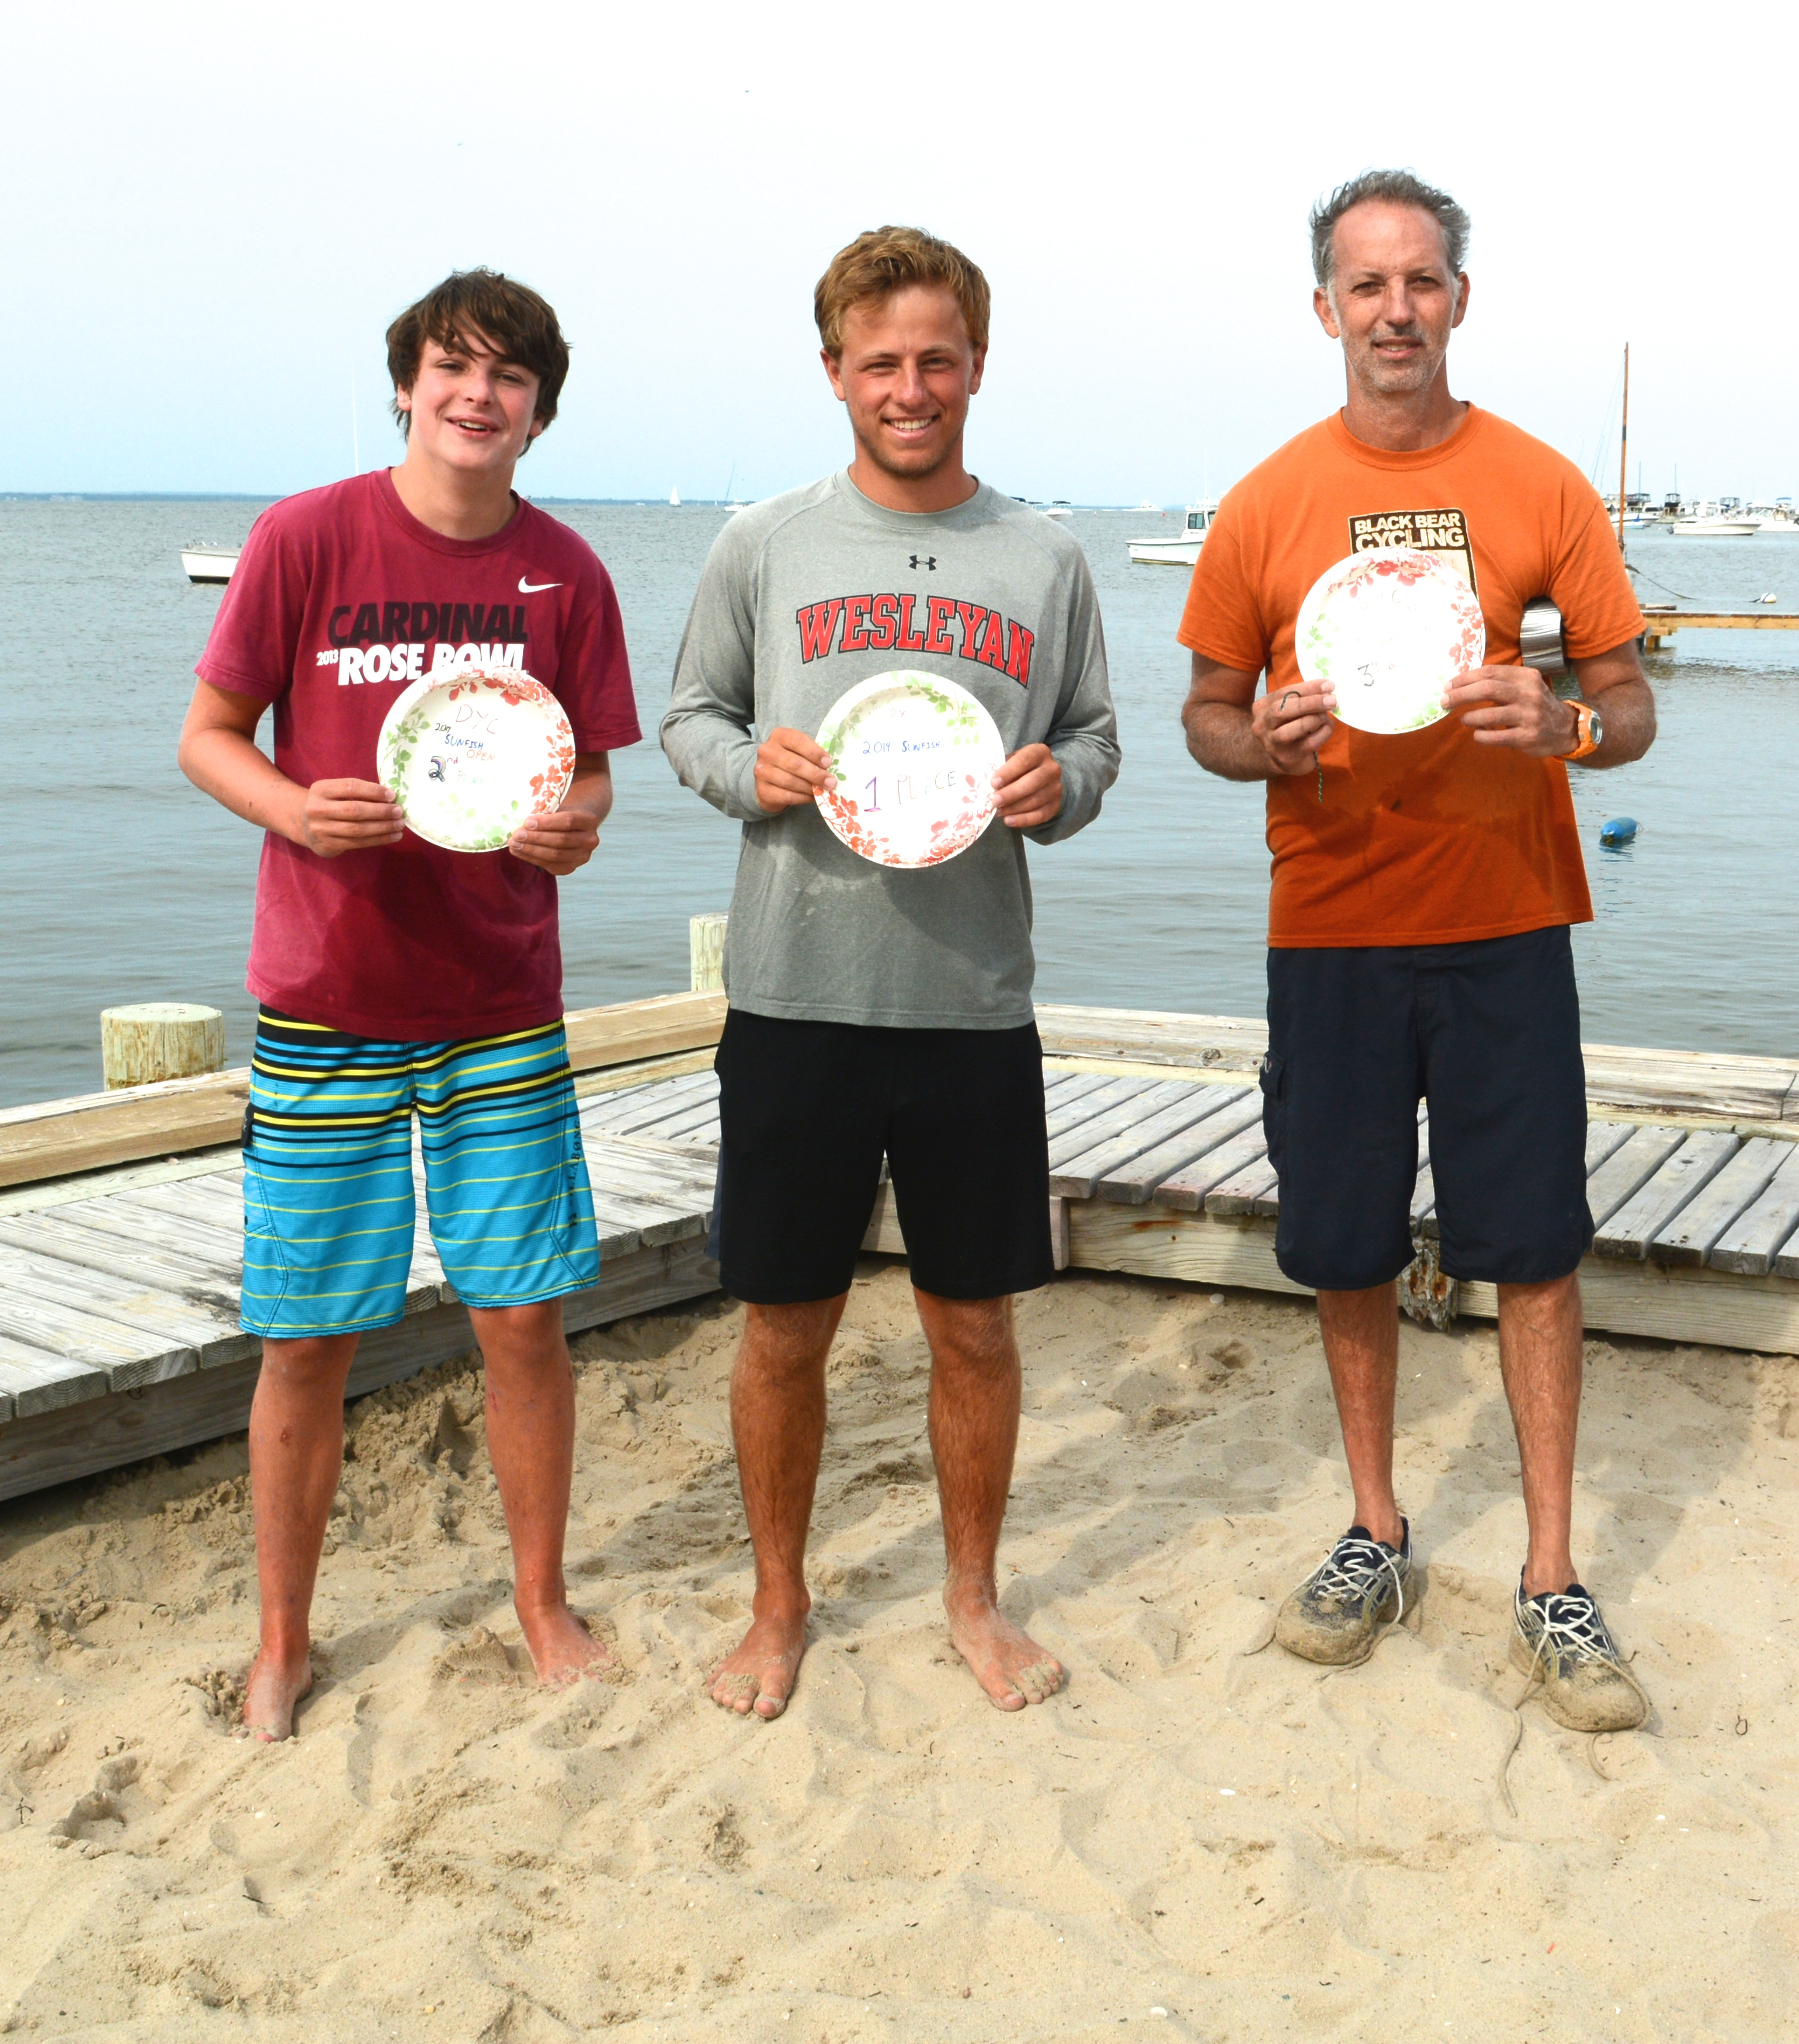 From left to right: Sam Bither - 2nd Place Jake Singer -  1st Place Stephen Rosenthal - 3rd Place